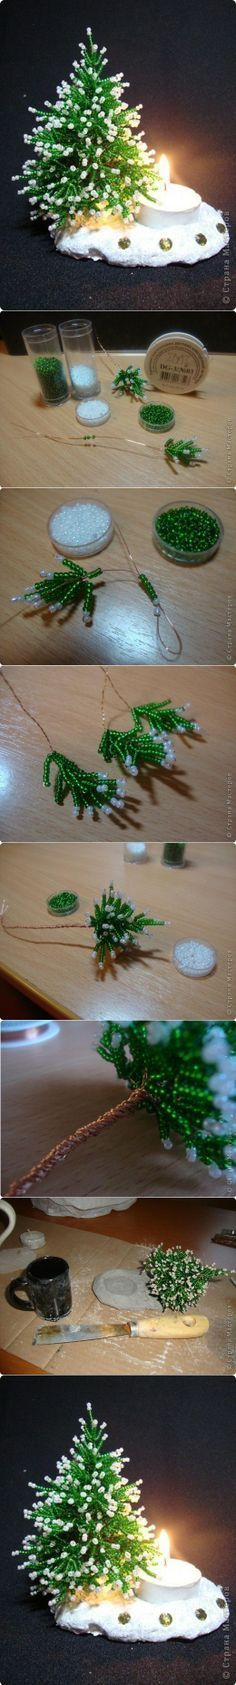 Herringbone Beans Miniature Christmas Tree http://www.goodshomedesign.com/herringbone-beans-miniature-christmas-tree/